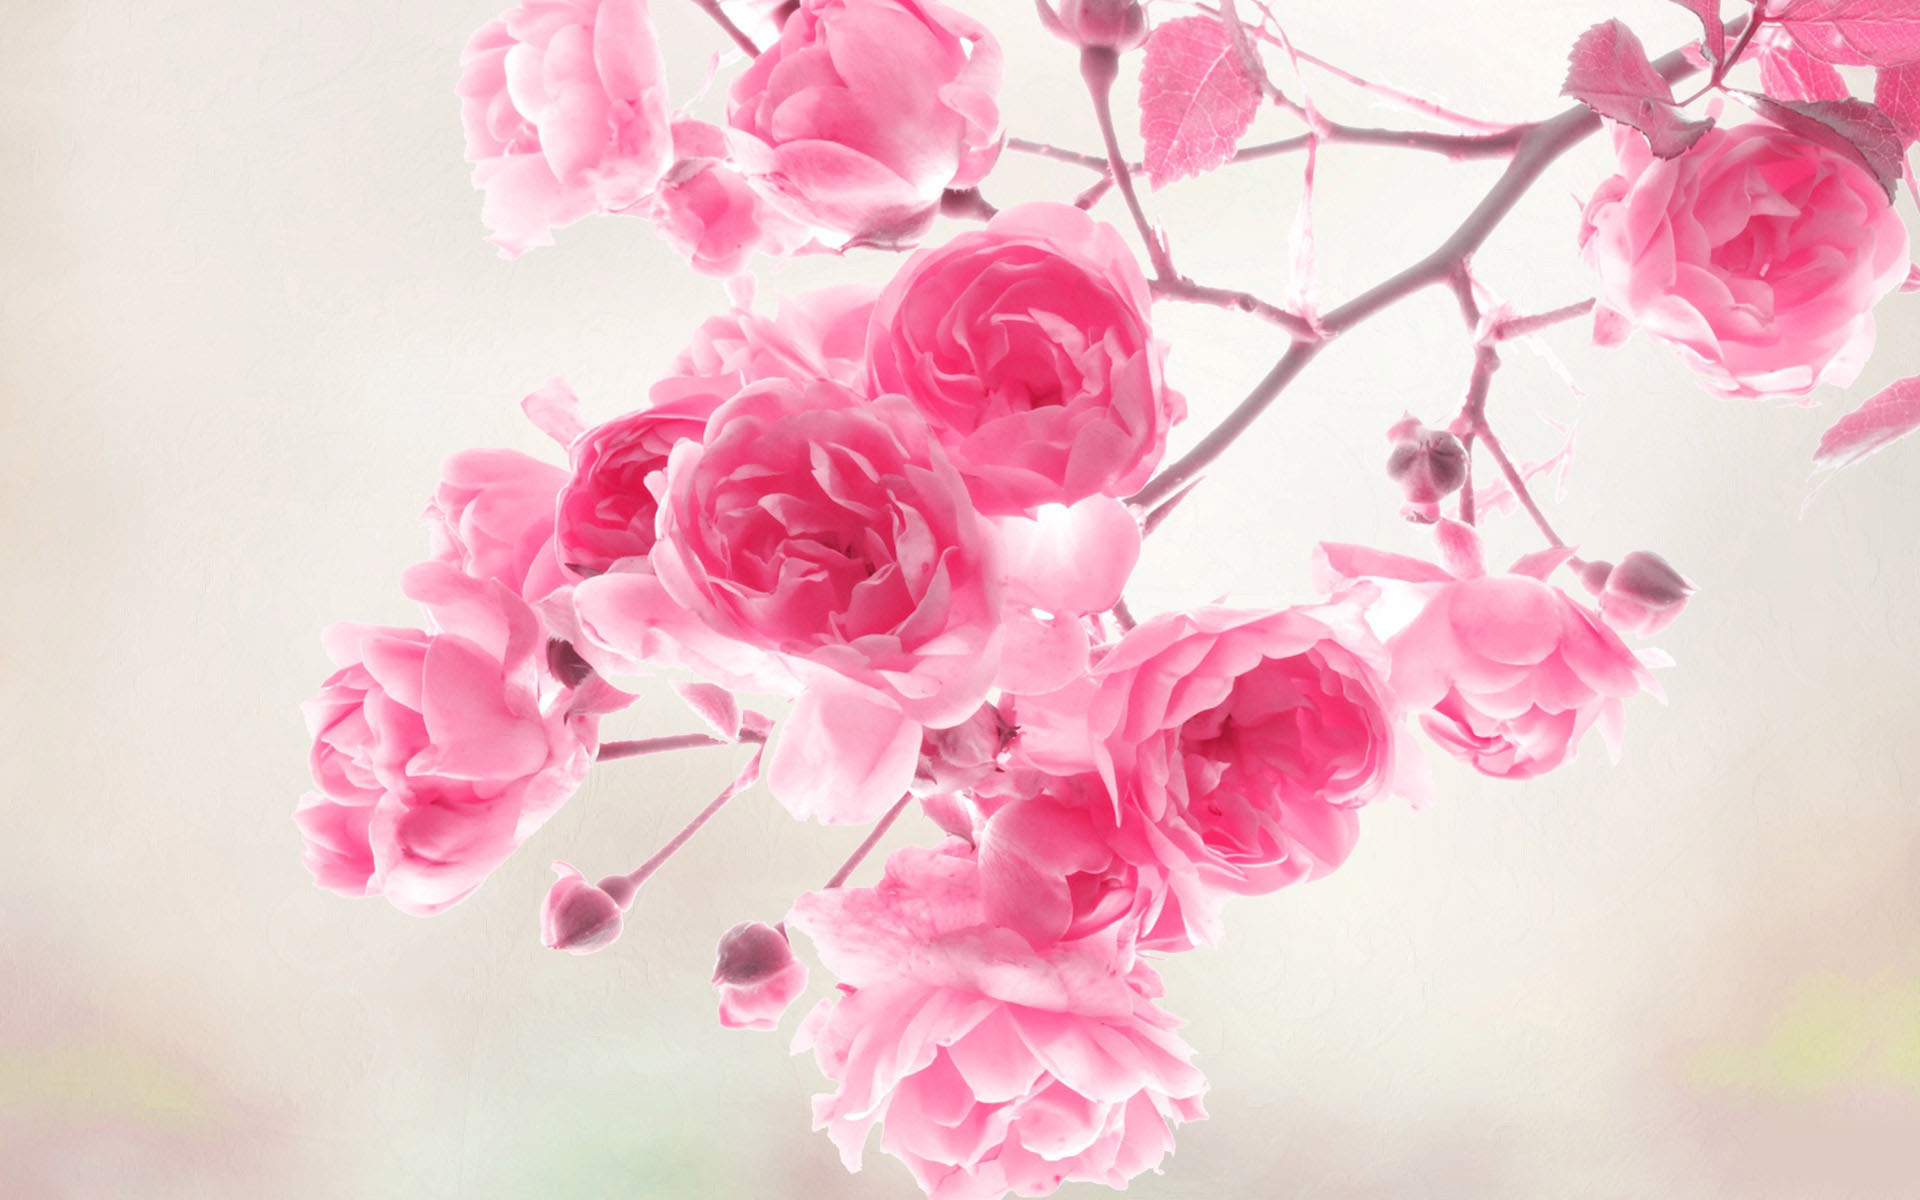 Spring flowers wallpaper 2560x1600 51841 flower wallpapers mightylinksfo